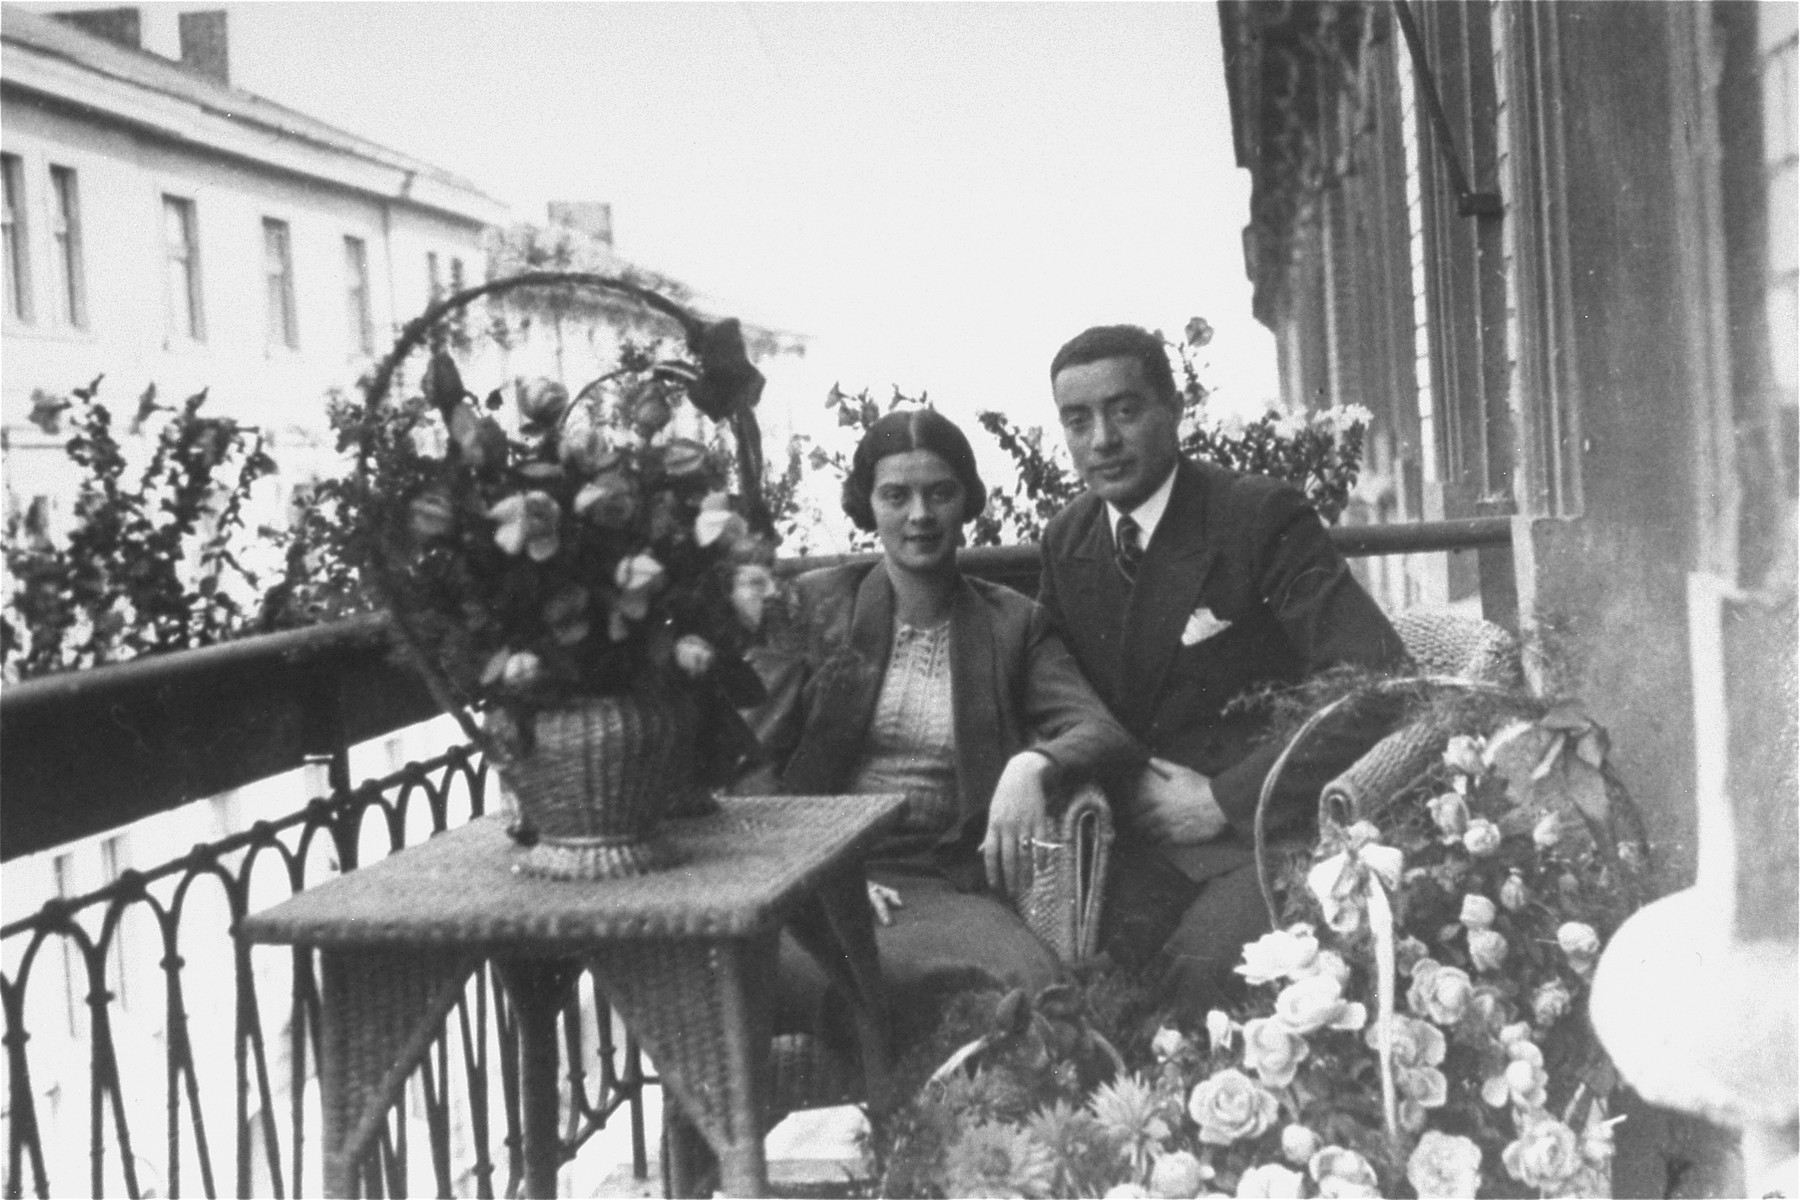 Portrait of a Jewish couple on a balcony in Rzeszow, Poland during their engagement party.   Pictured are Mina Nattel and Beno Schmelkis. During the war Mina, Beno and their daughter Rachel were killed by the Germans.